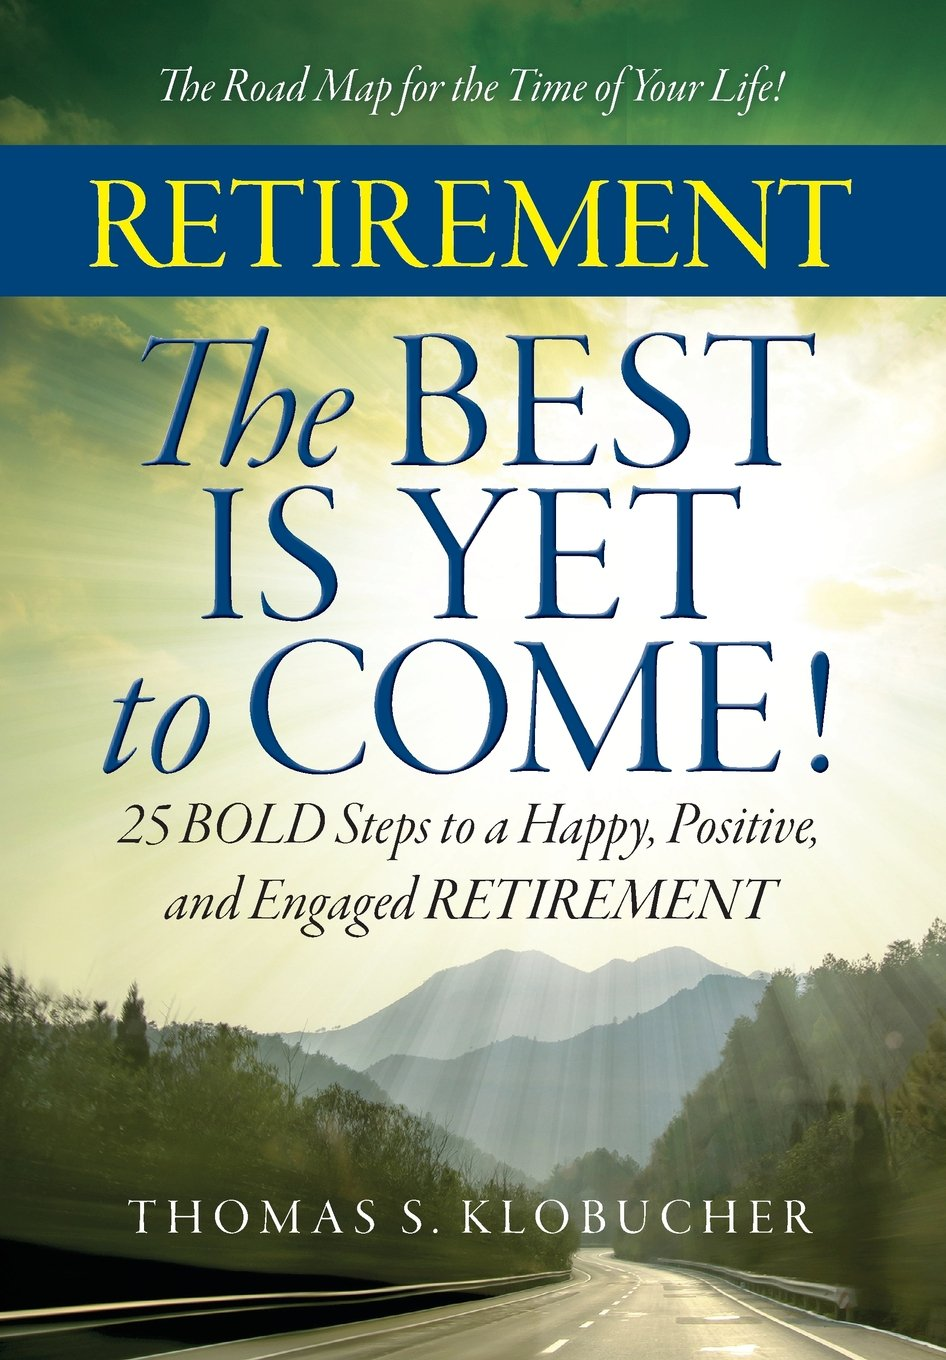 Retirement, The Best Is Yet to Come!